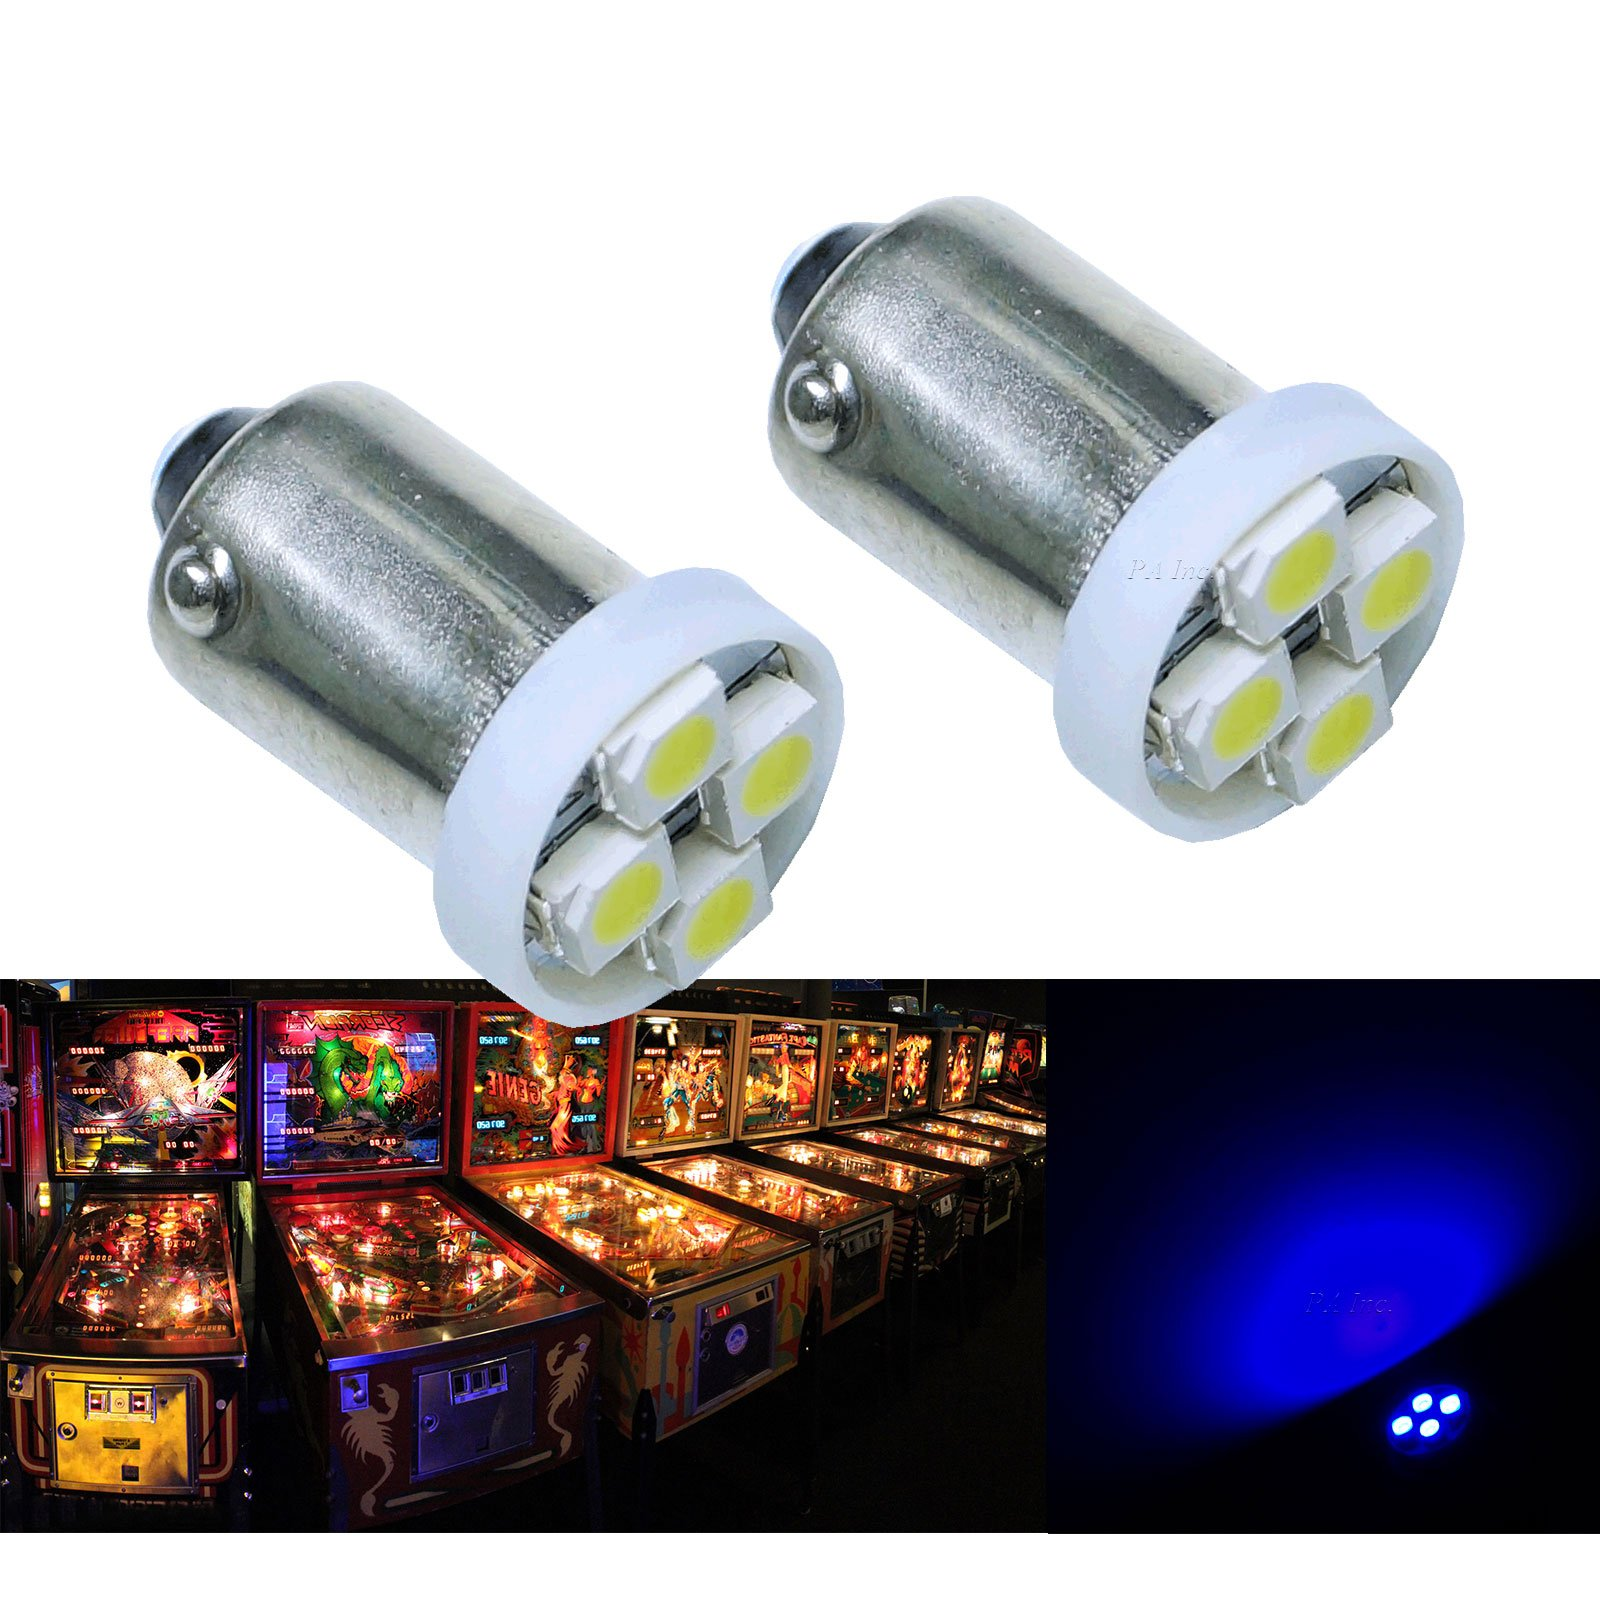 PA® 10PCS #1893 #44 #47 #756 #1847 BA9S 4SMD LED Wedge Pinball Machine Light Bulb Blue-6.3V